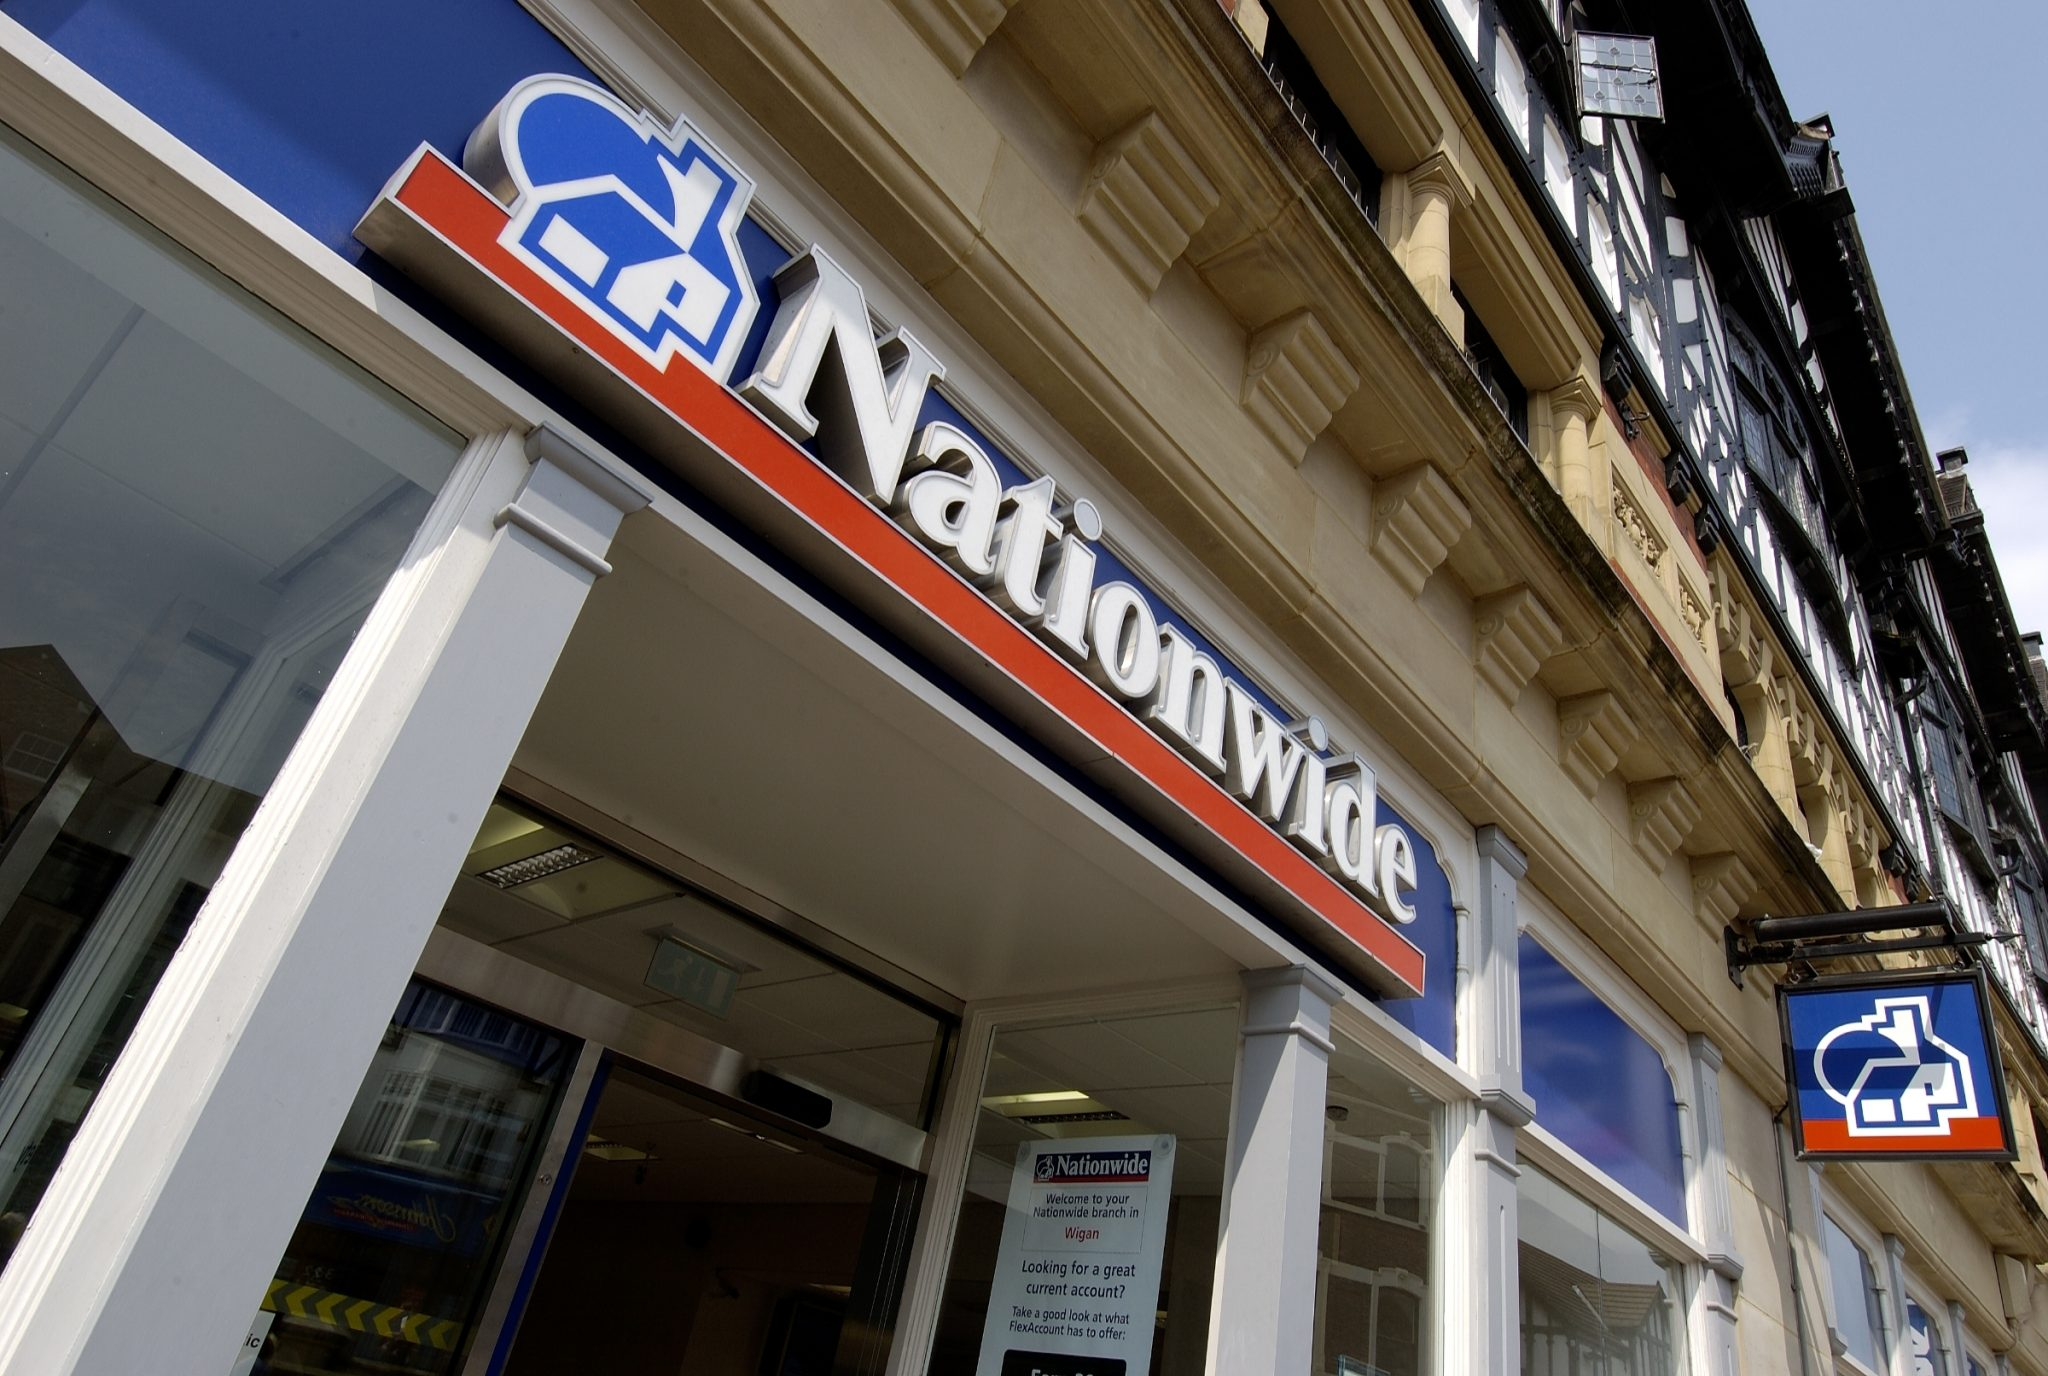 Nationwide Building Society has rolled out V.me by Visa. RBS has also confirmed